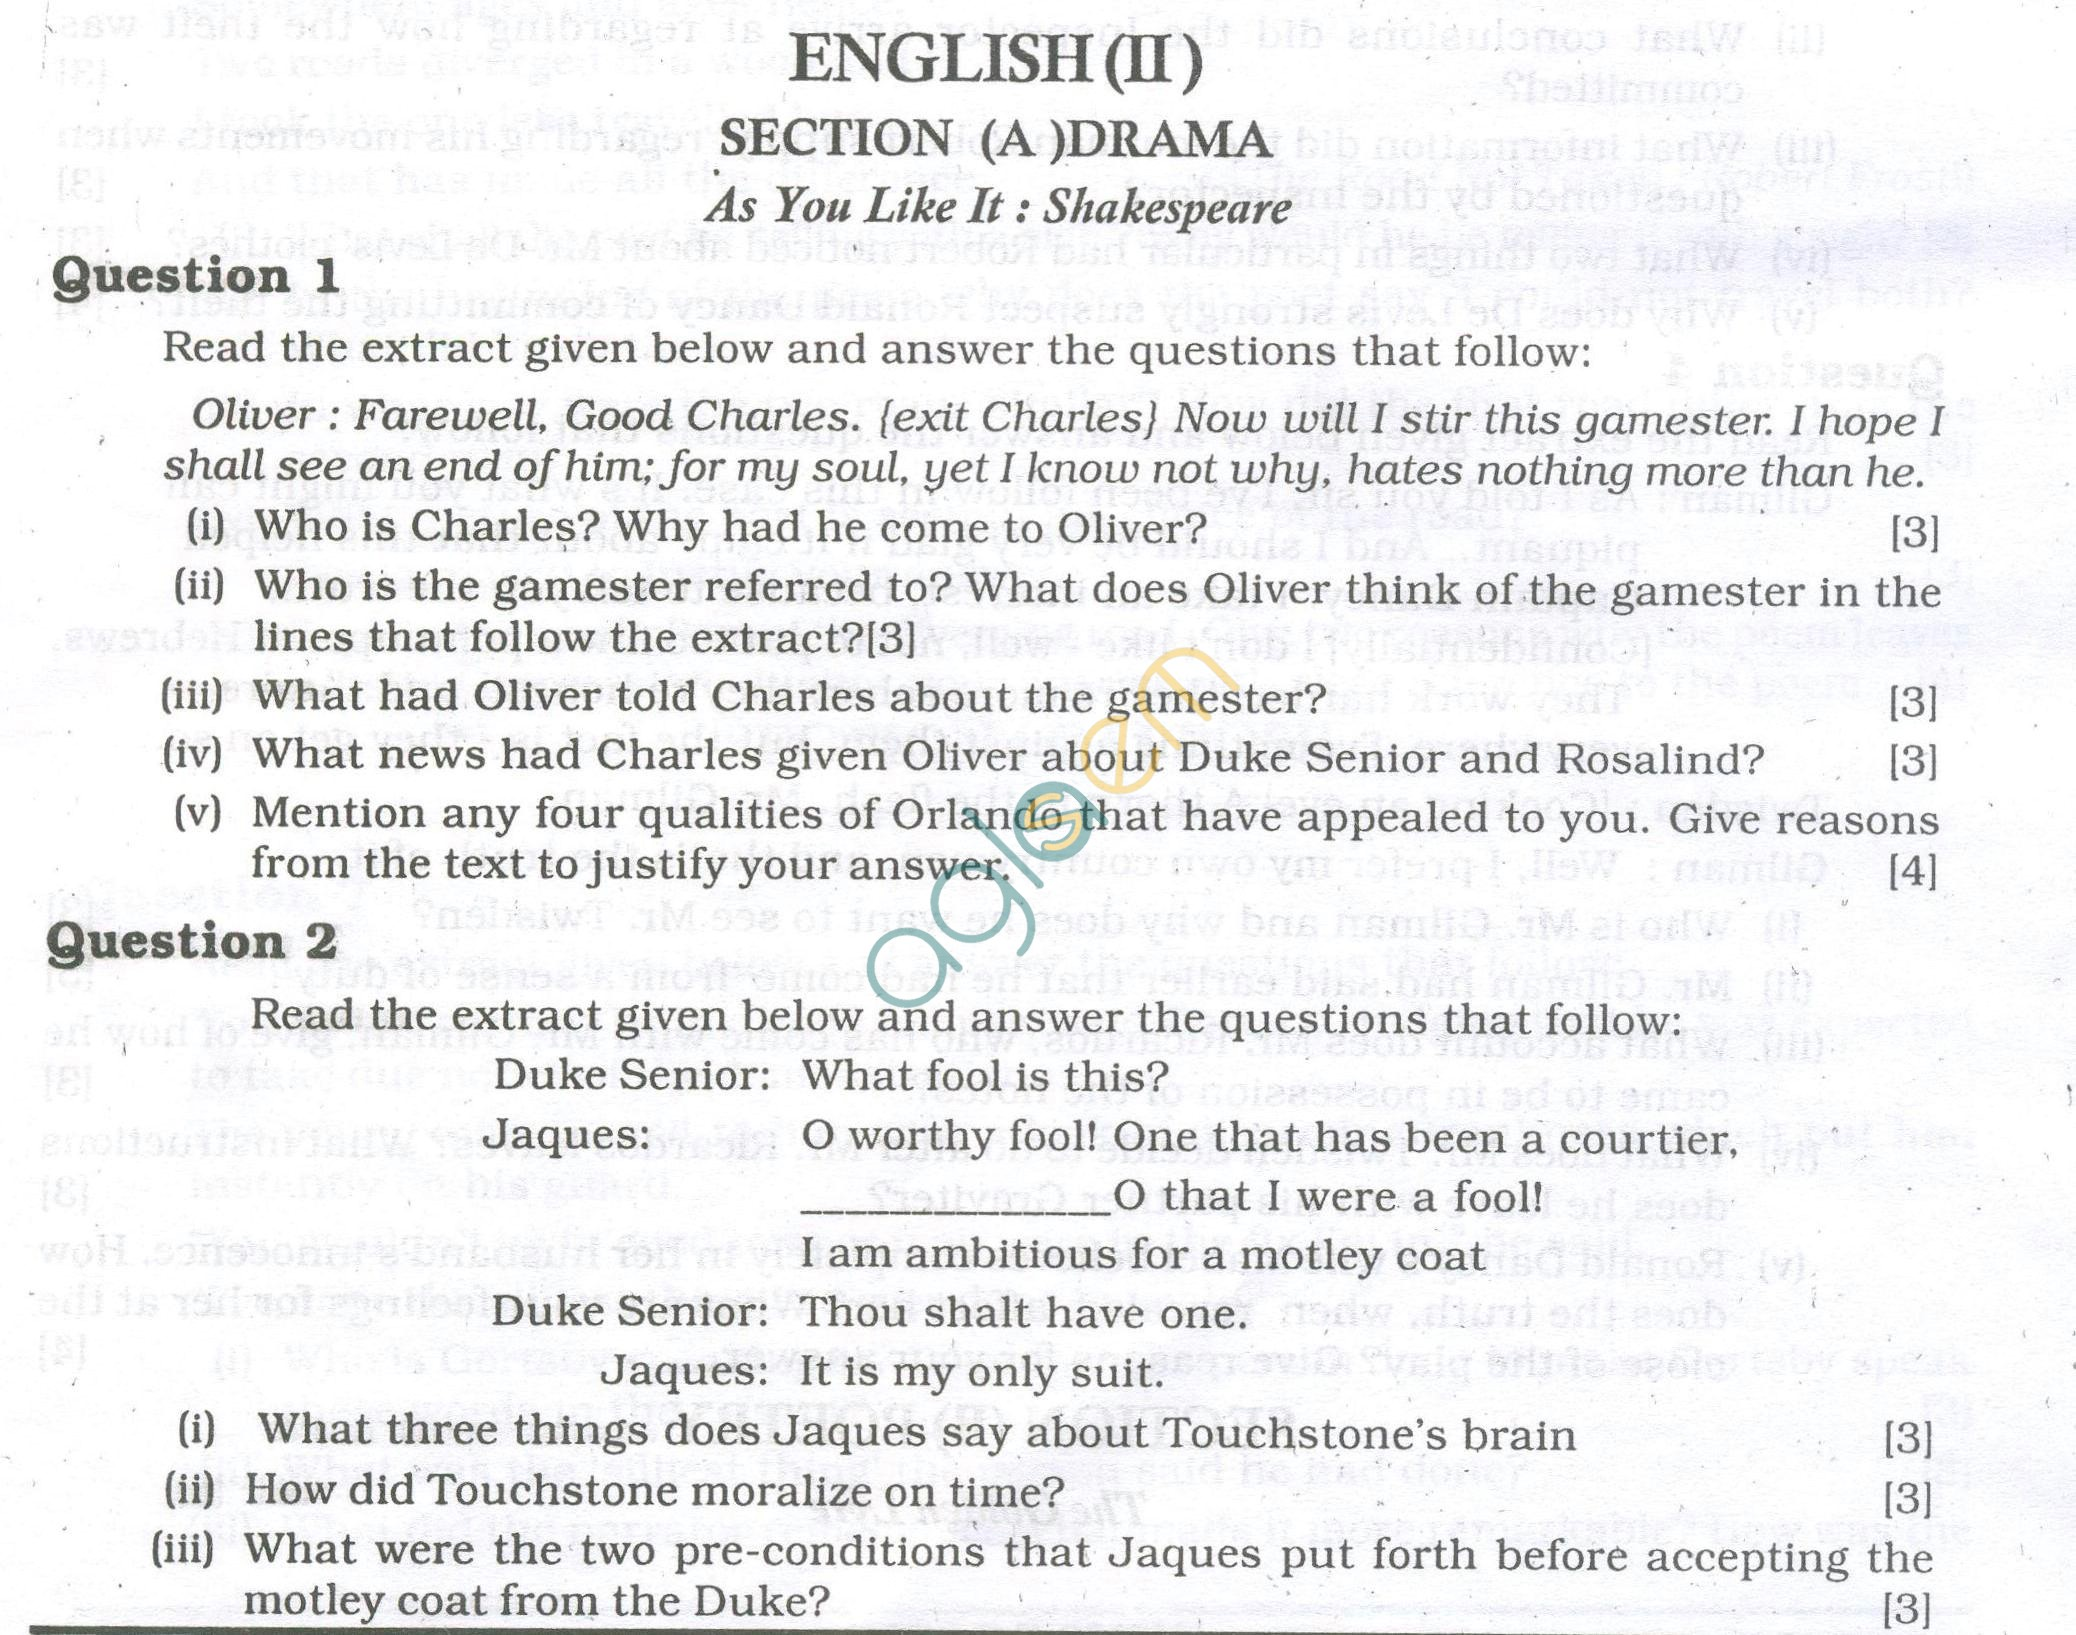 ICSE Question Papers 2013 for Class 10 -English Paper - 2